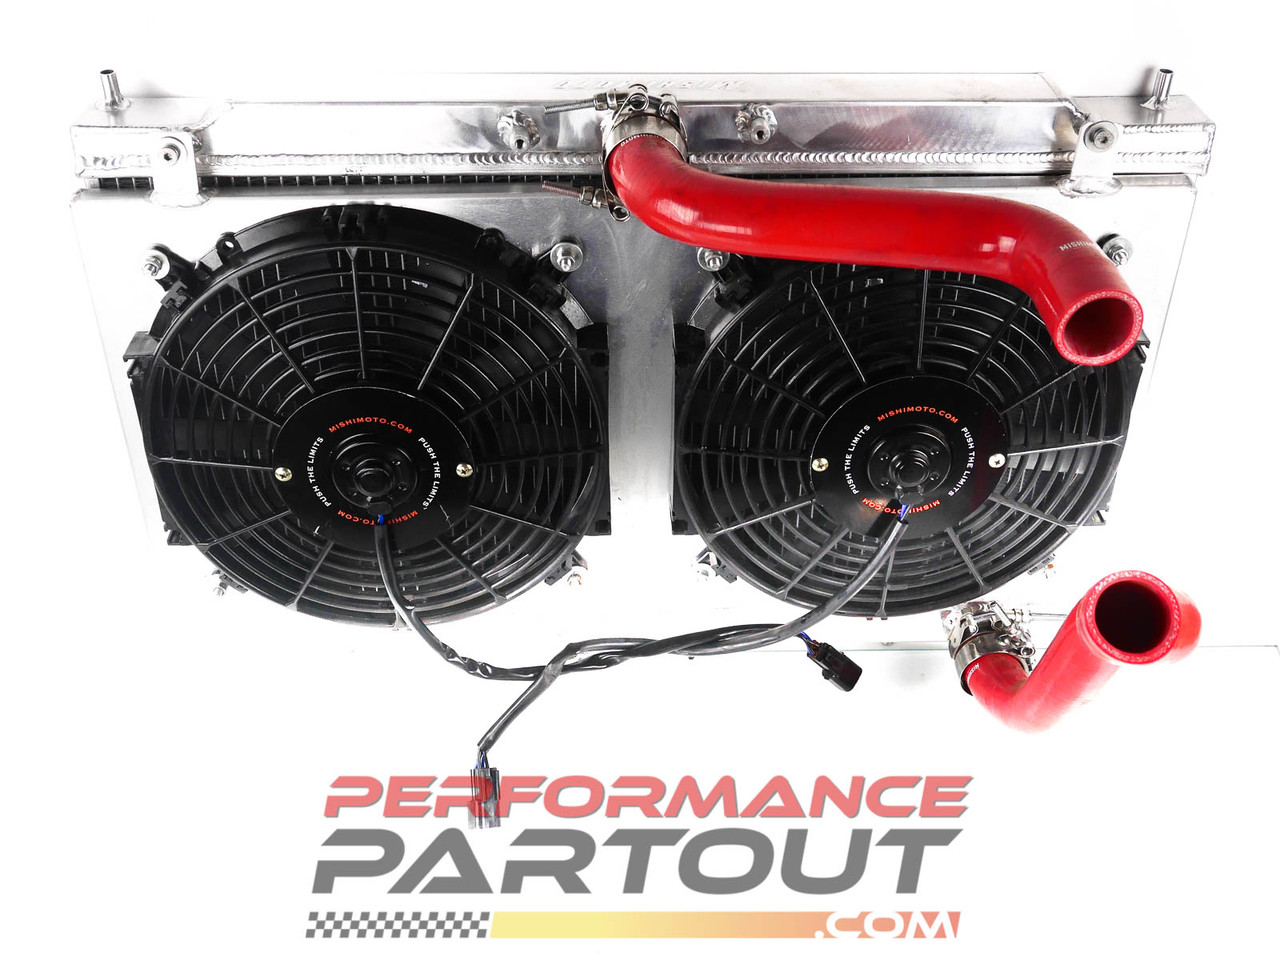 NEW Mishimoto 2G radiator & dual fan shroud kit